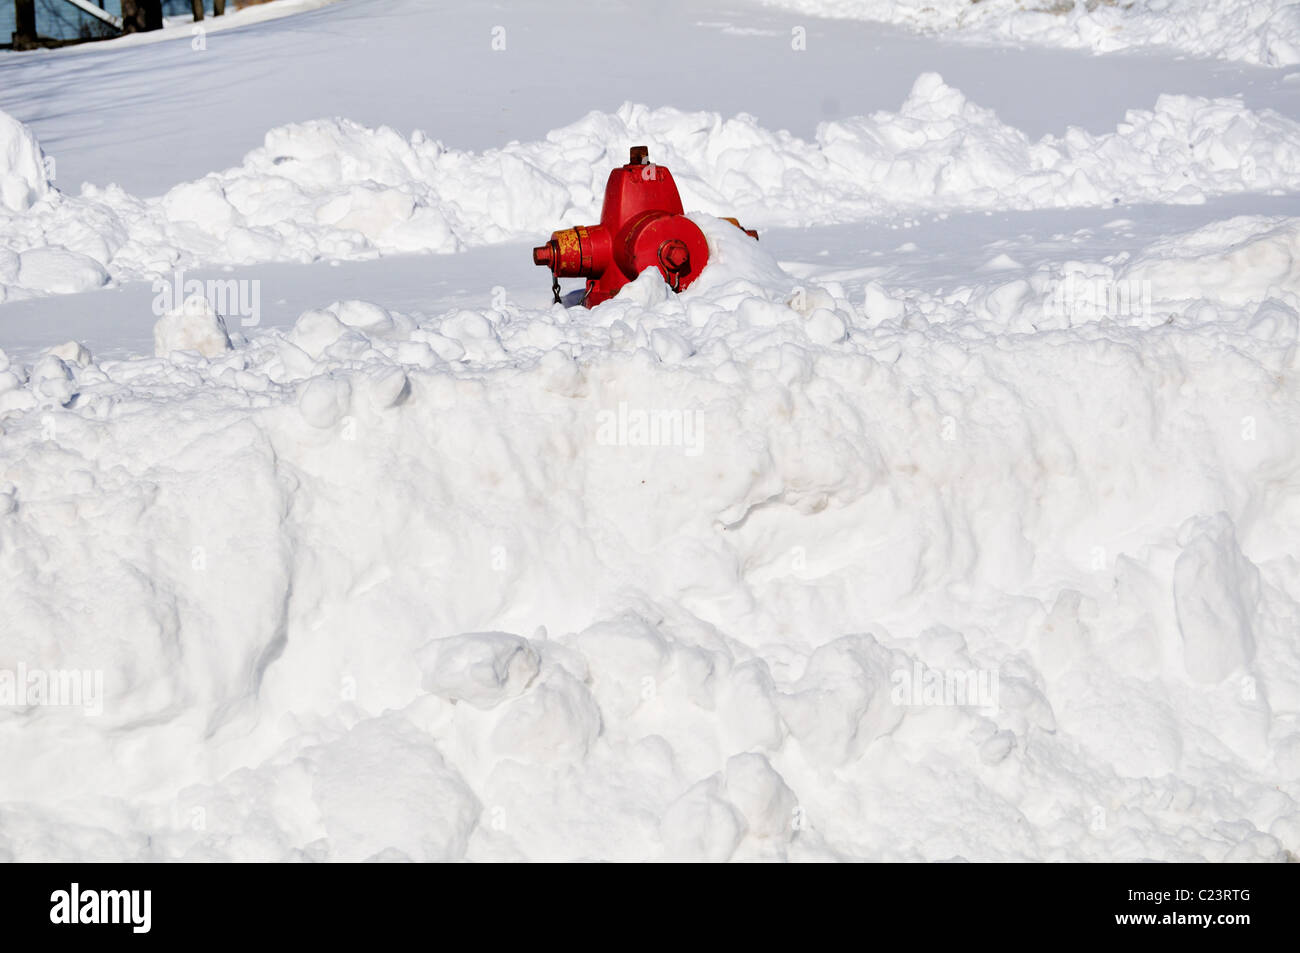 Midwestern blizzard dumped heavy snow fall buried fire hydrants which have to be located and dug out of snowdrifts - Stock Image